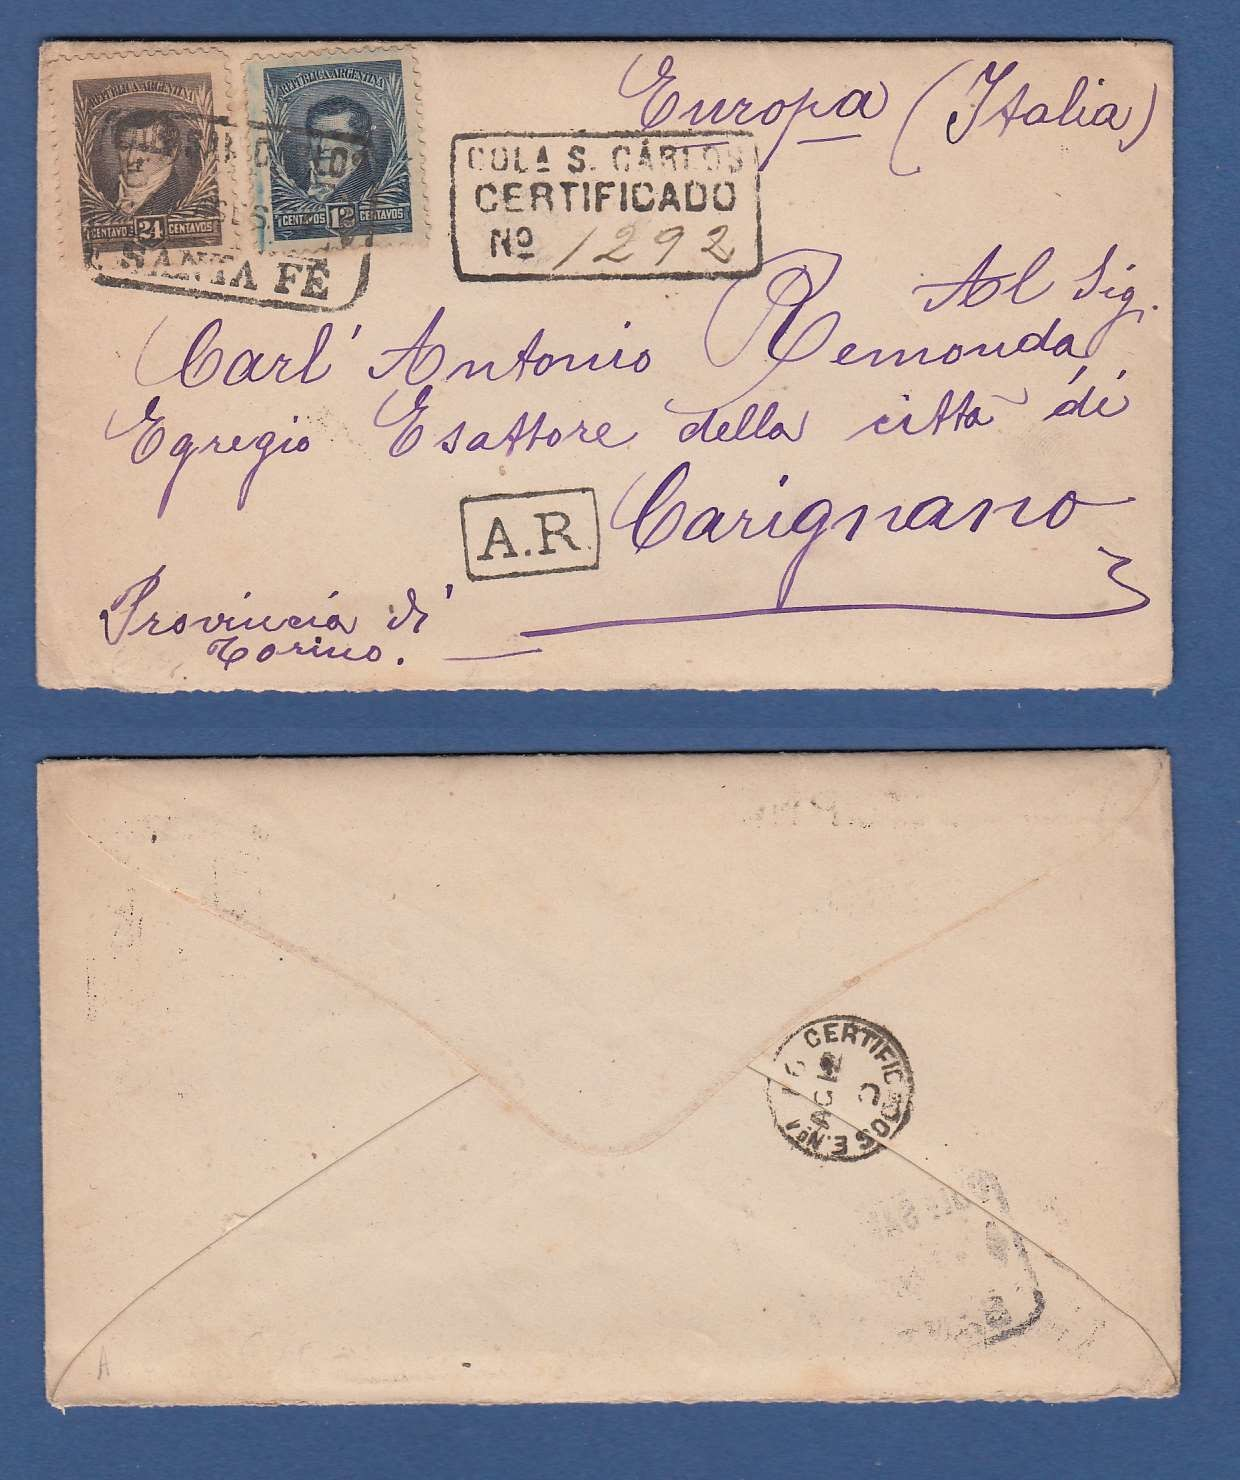 ARGENTINA AR cover 1894 Colonia Sn Carlos to Itlay